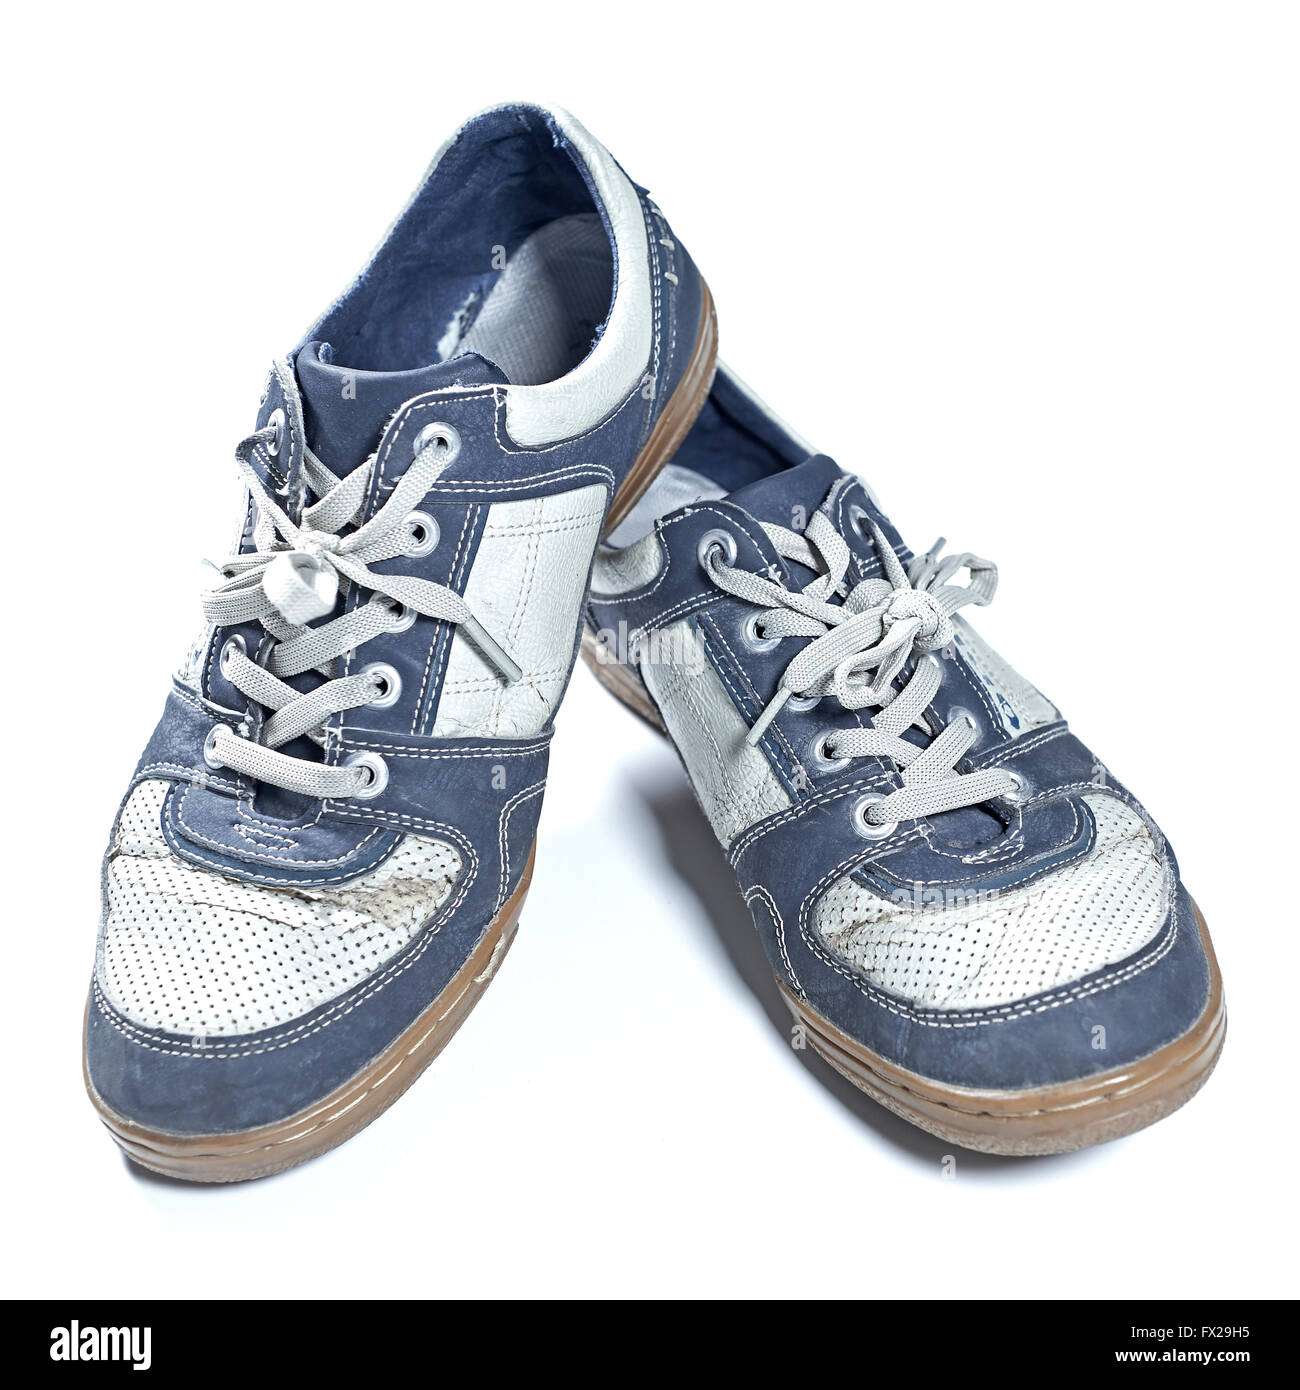 Old worn out sneakers isolated on white - Stock Image